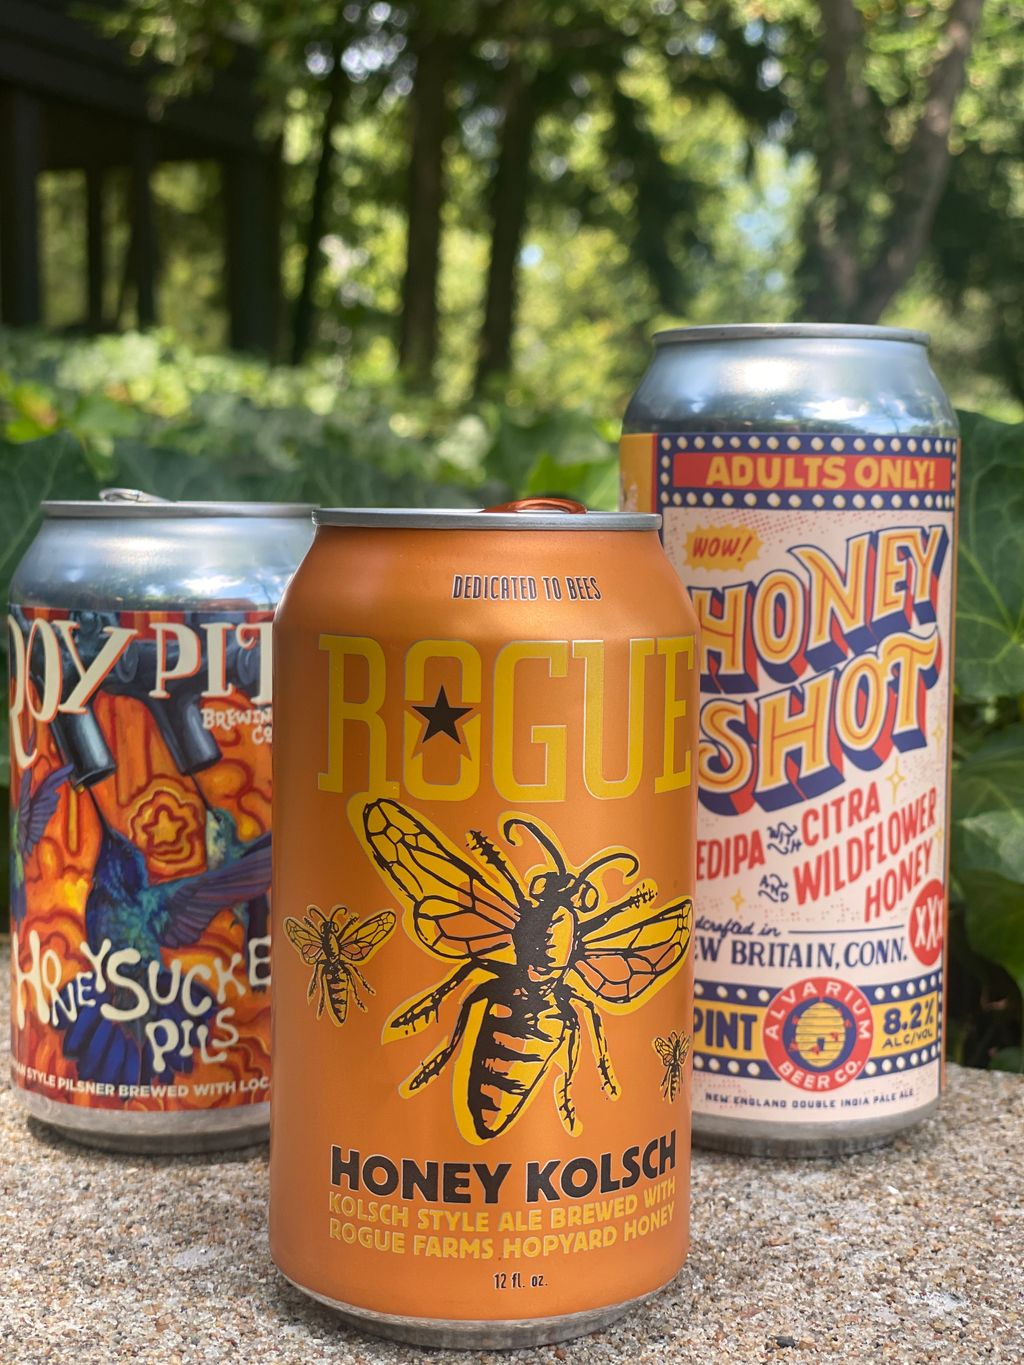 Honey Kolsch from Rogue Ales & Spirits wins gold at the annual Honey Beer Competition. (image courtesy of the National Honey Board)